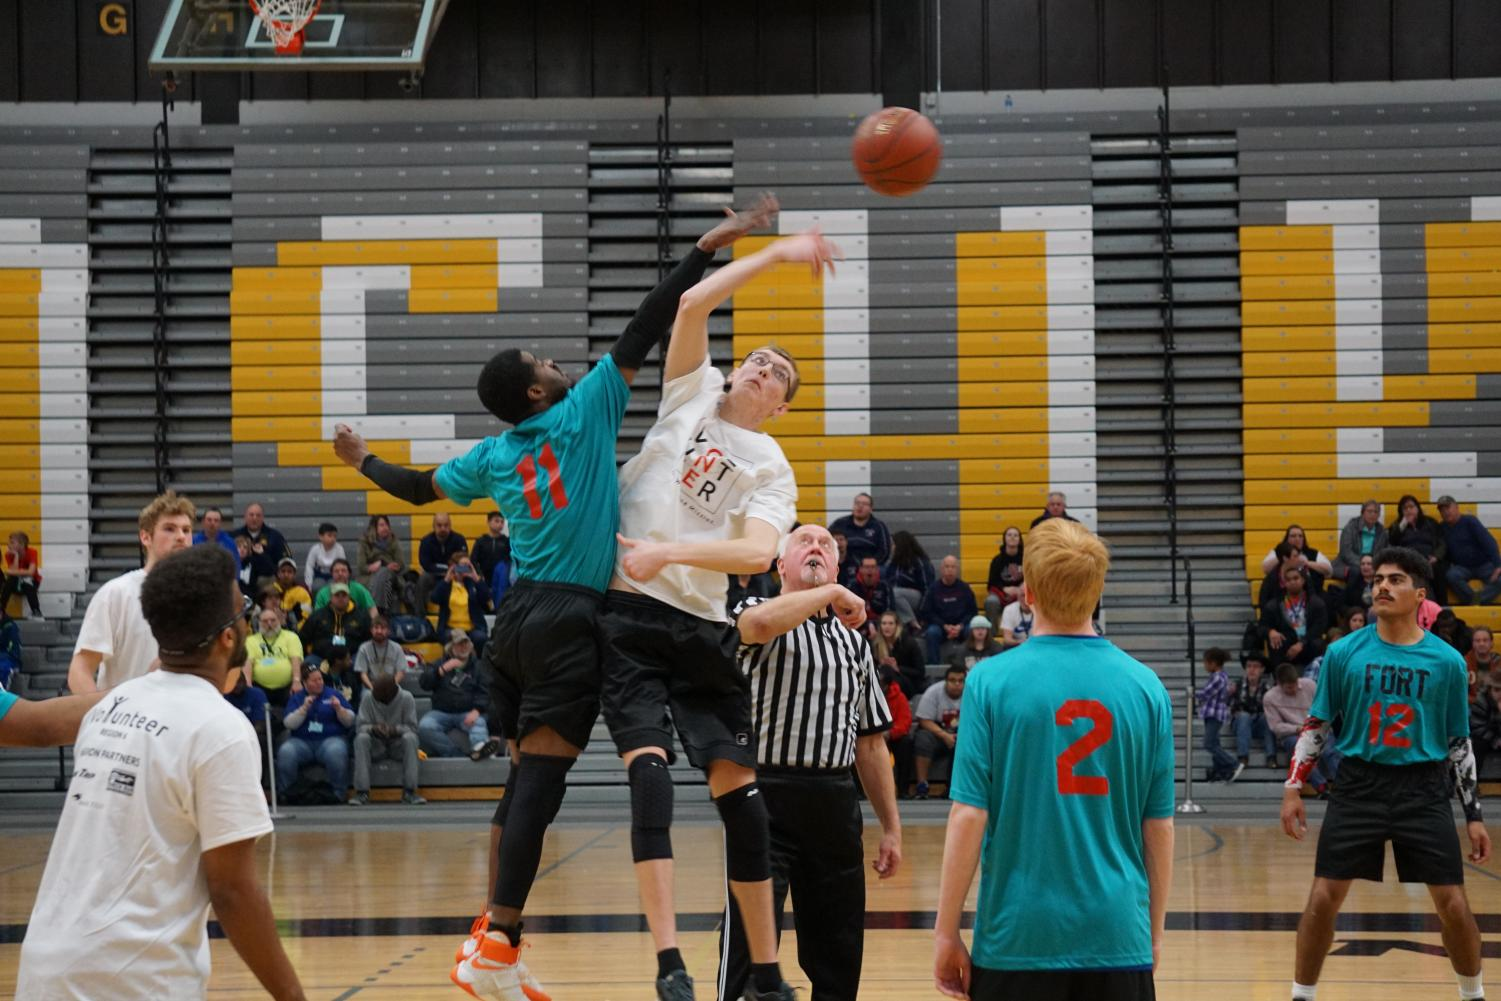 Team Wisconsin athlete Jake Caston goes up for the opening tipoff during Saturday's game.